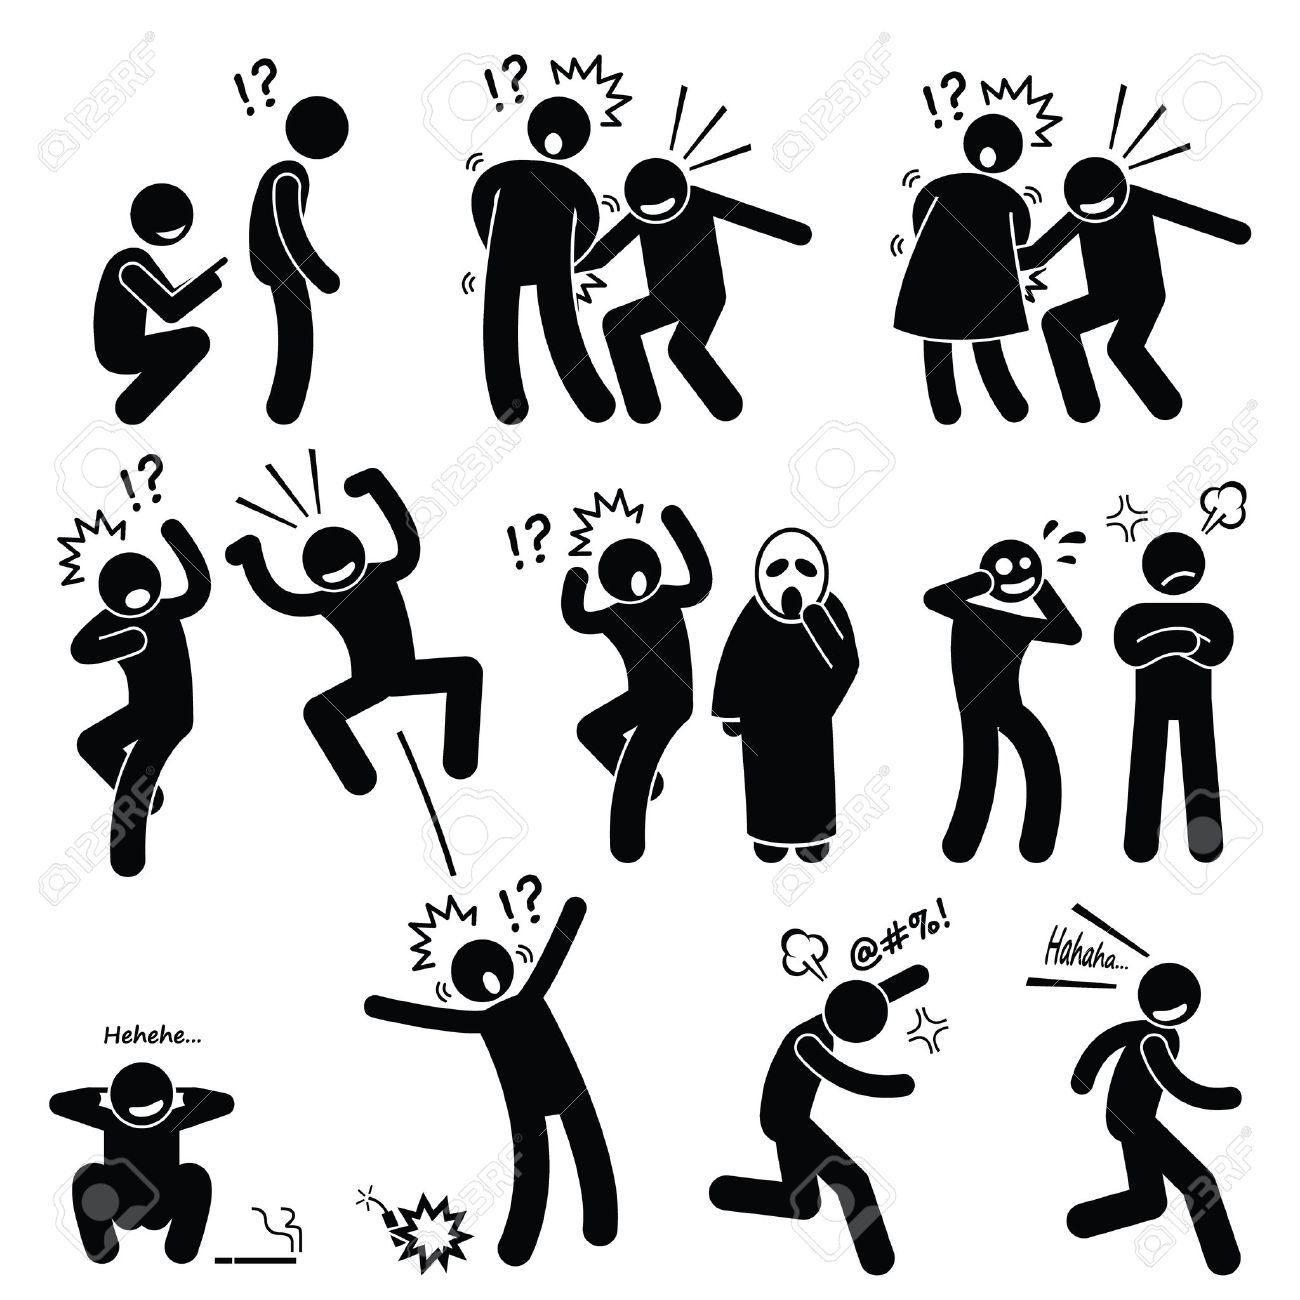 funny people prank playful actions stick figure pictogram icons royalty  free cliparts, vectors, and stock illustration. image 43061962.  123rf